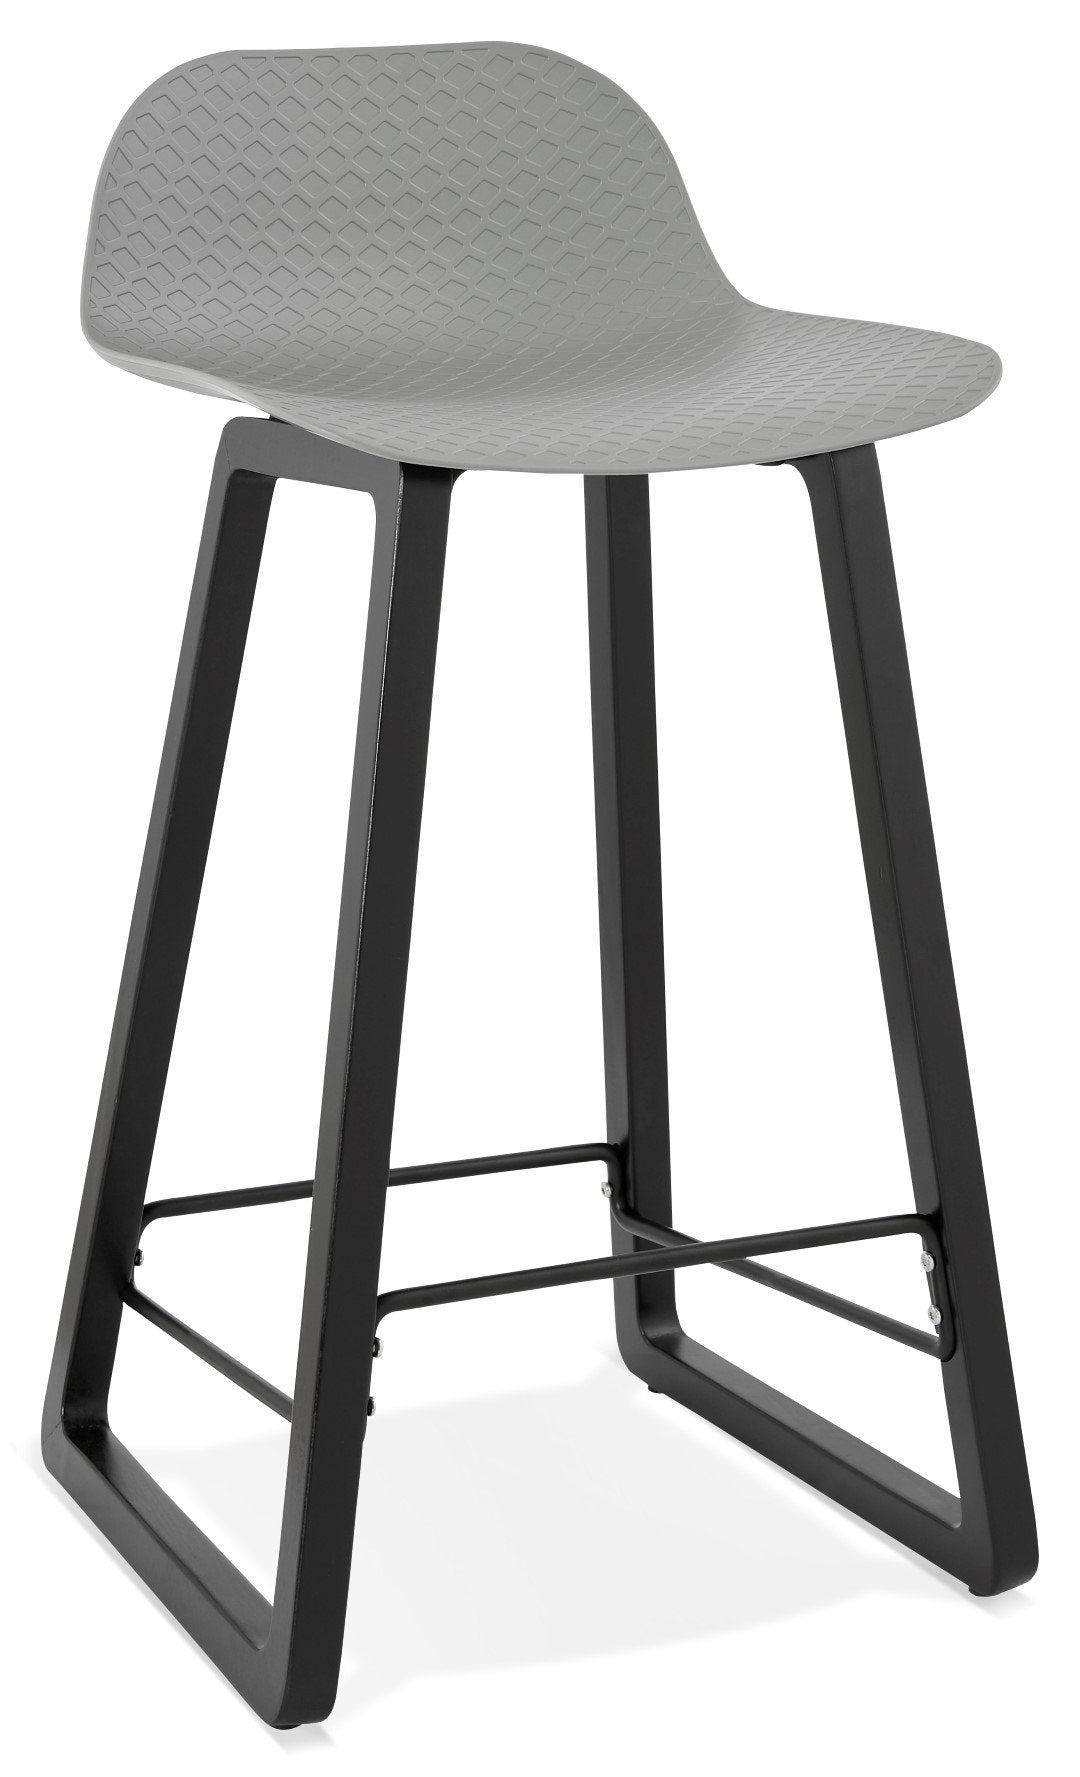 Bar stool MIKY MINI